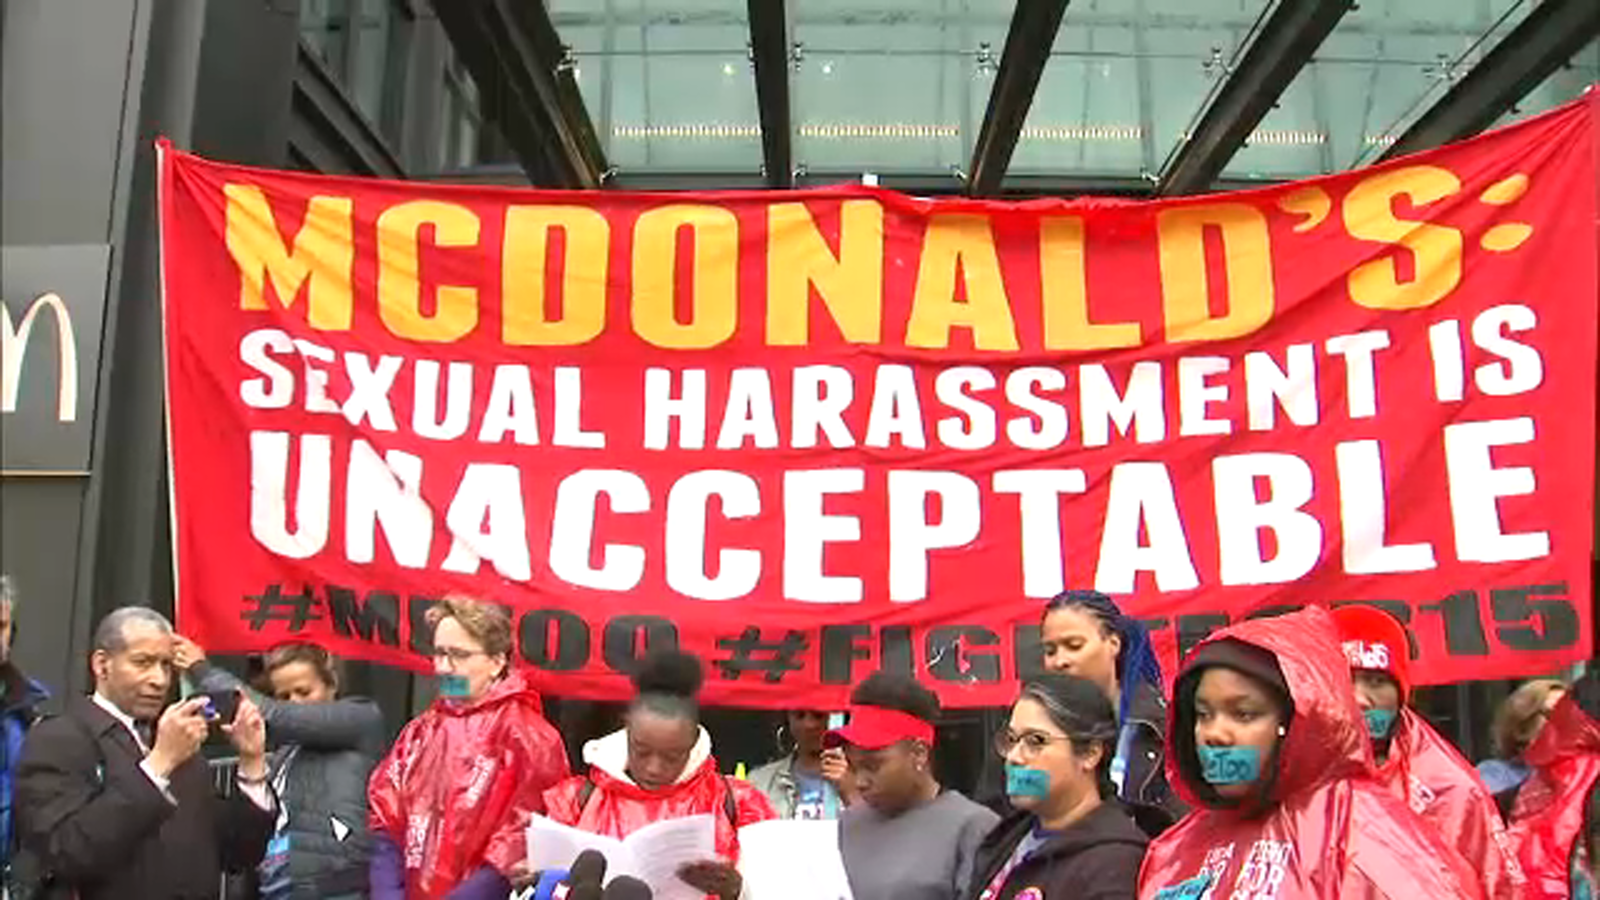 McDonald's sexual harrasment protests